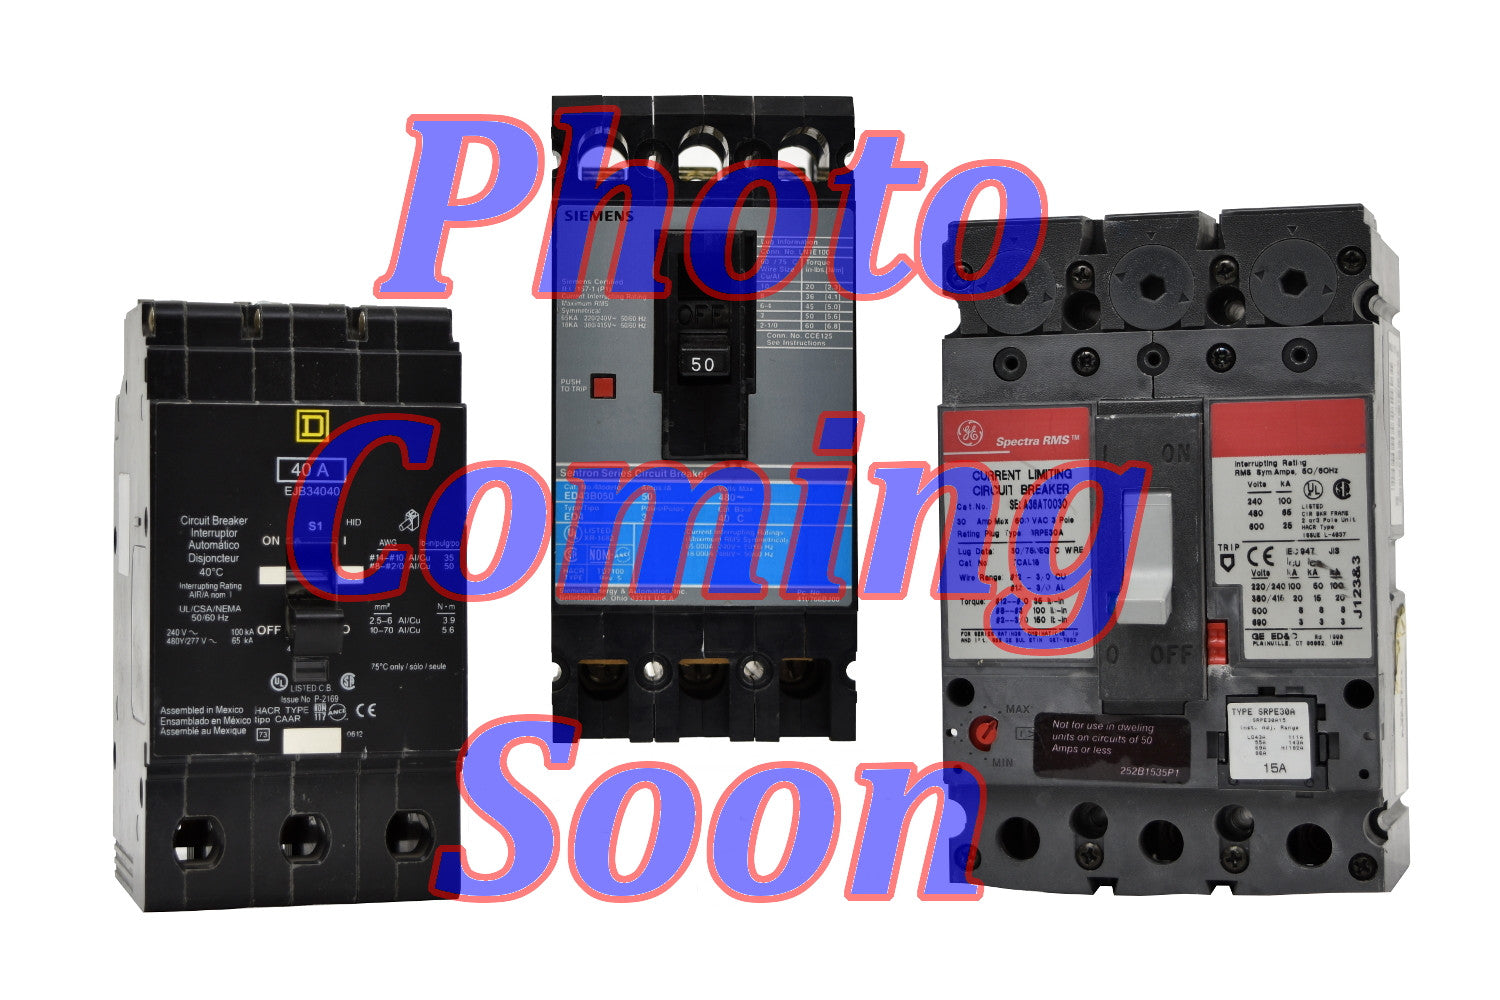 General Electric FCV36TE060R1 Circuit Breakers